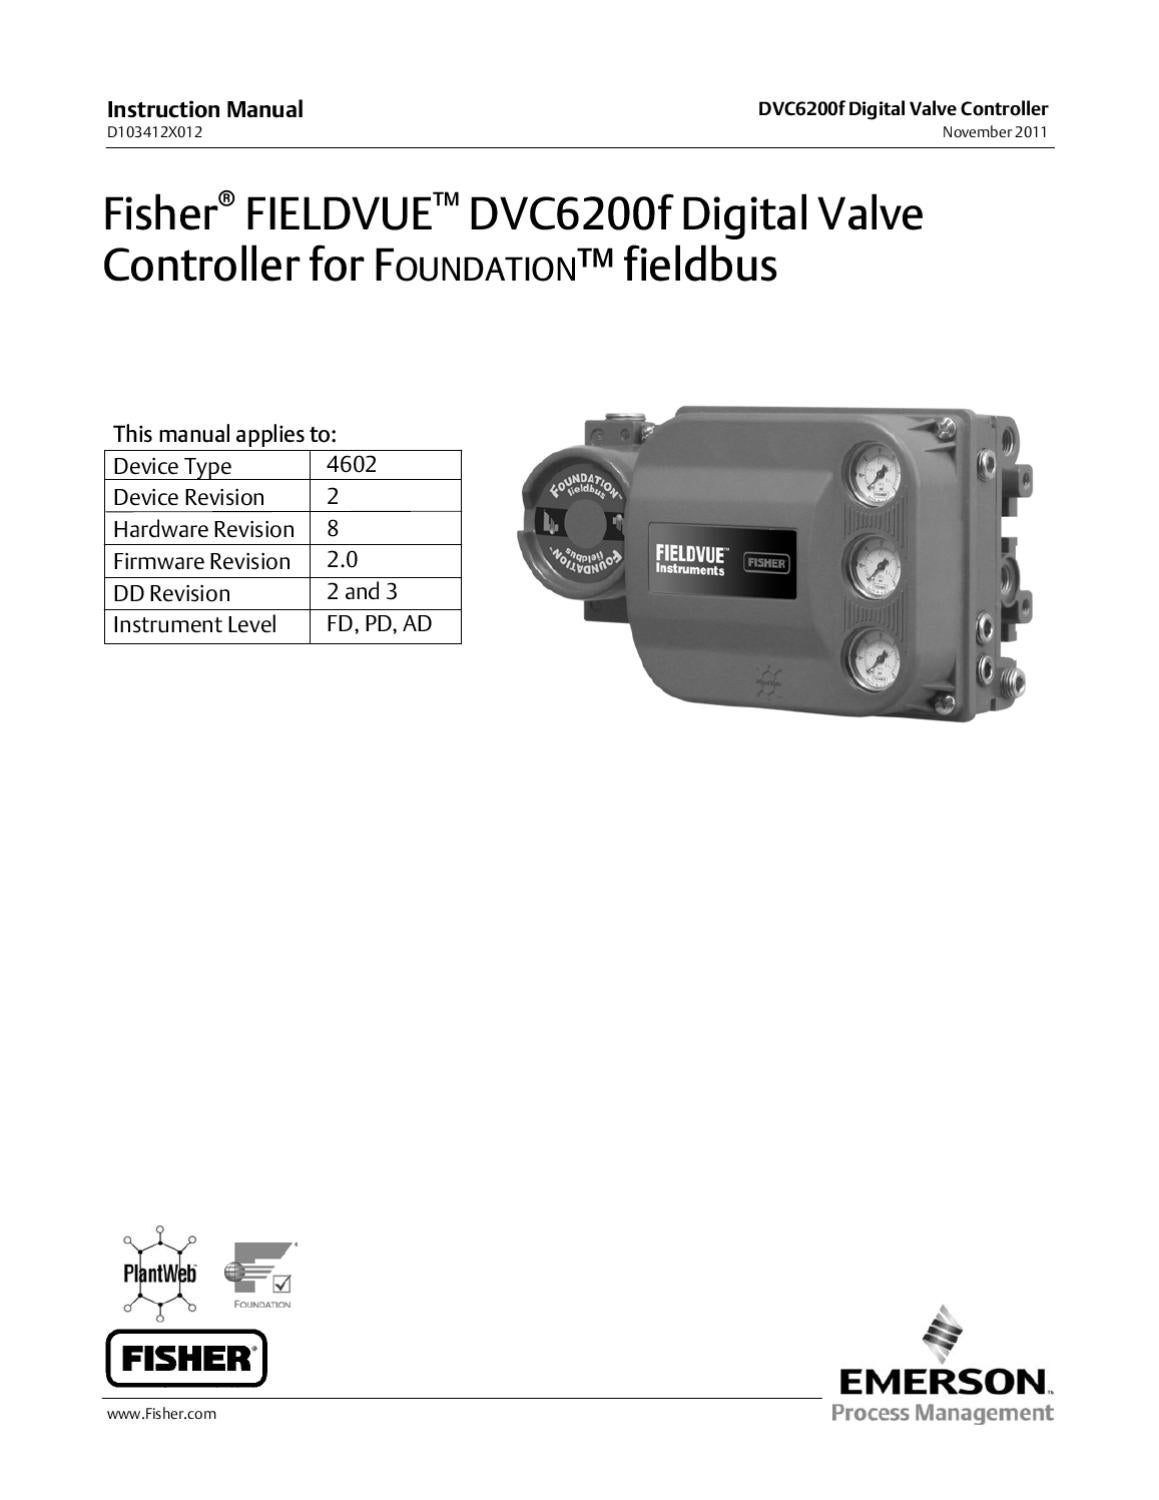 dvc6200f instruction manual nov 2011 by rmc process controls dvc6200f instruction manual nov 2011 by rmc process controls filtration inc issuu